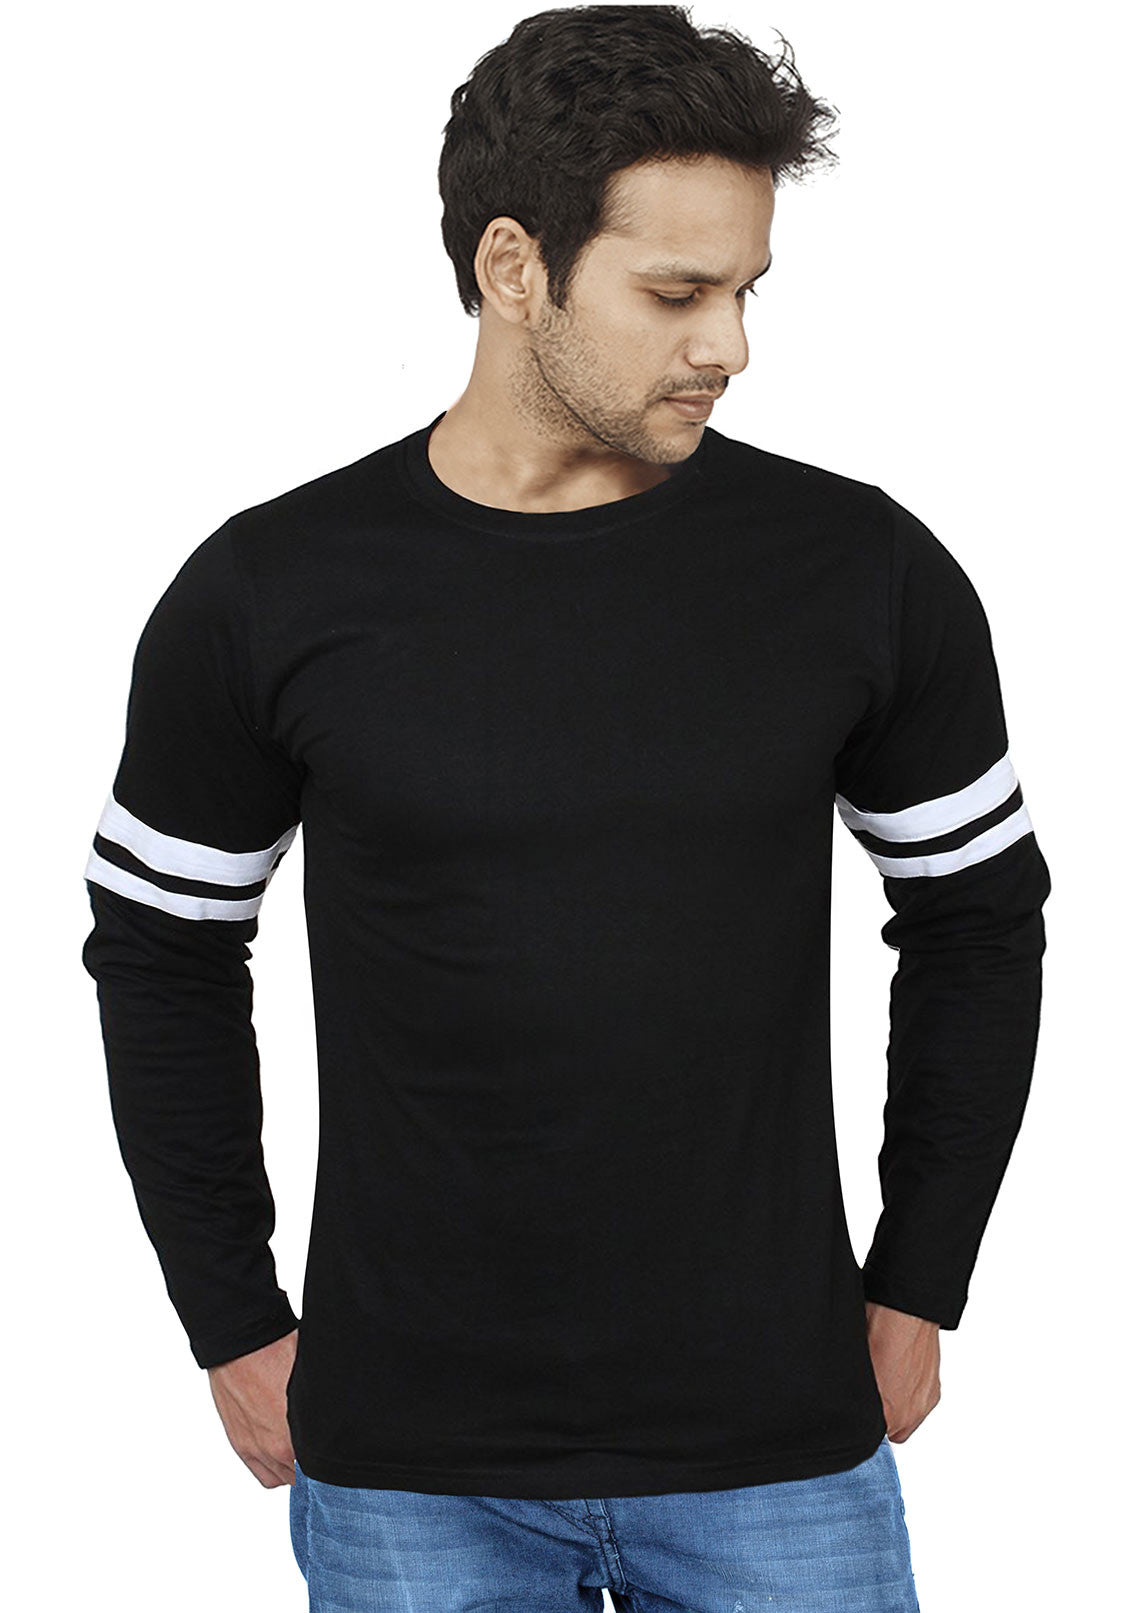 Sport Trim Striped Plain Full Sleeves T Shirt - Wear Your Opinion ...